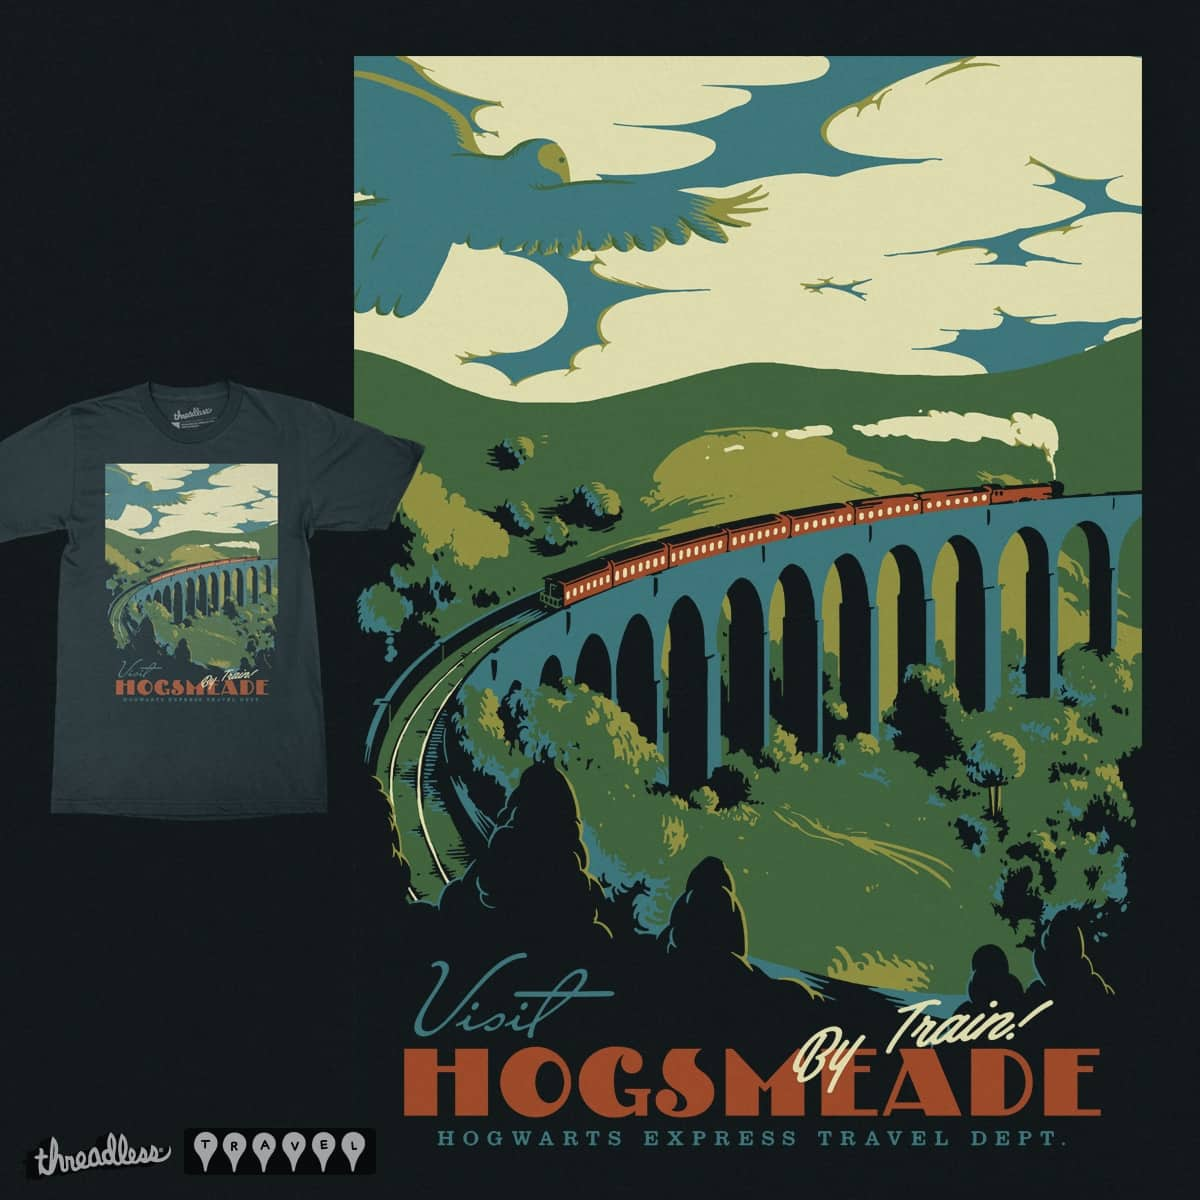 Visit Hogsmeade by mathiole on Threadless